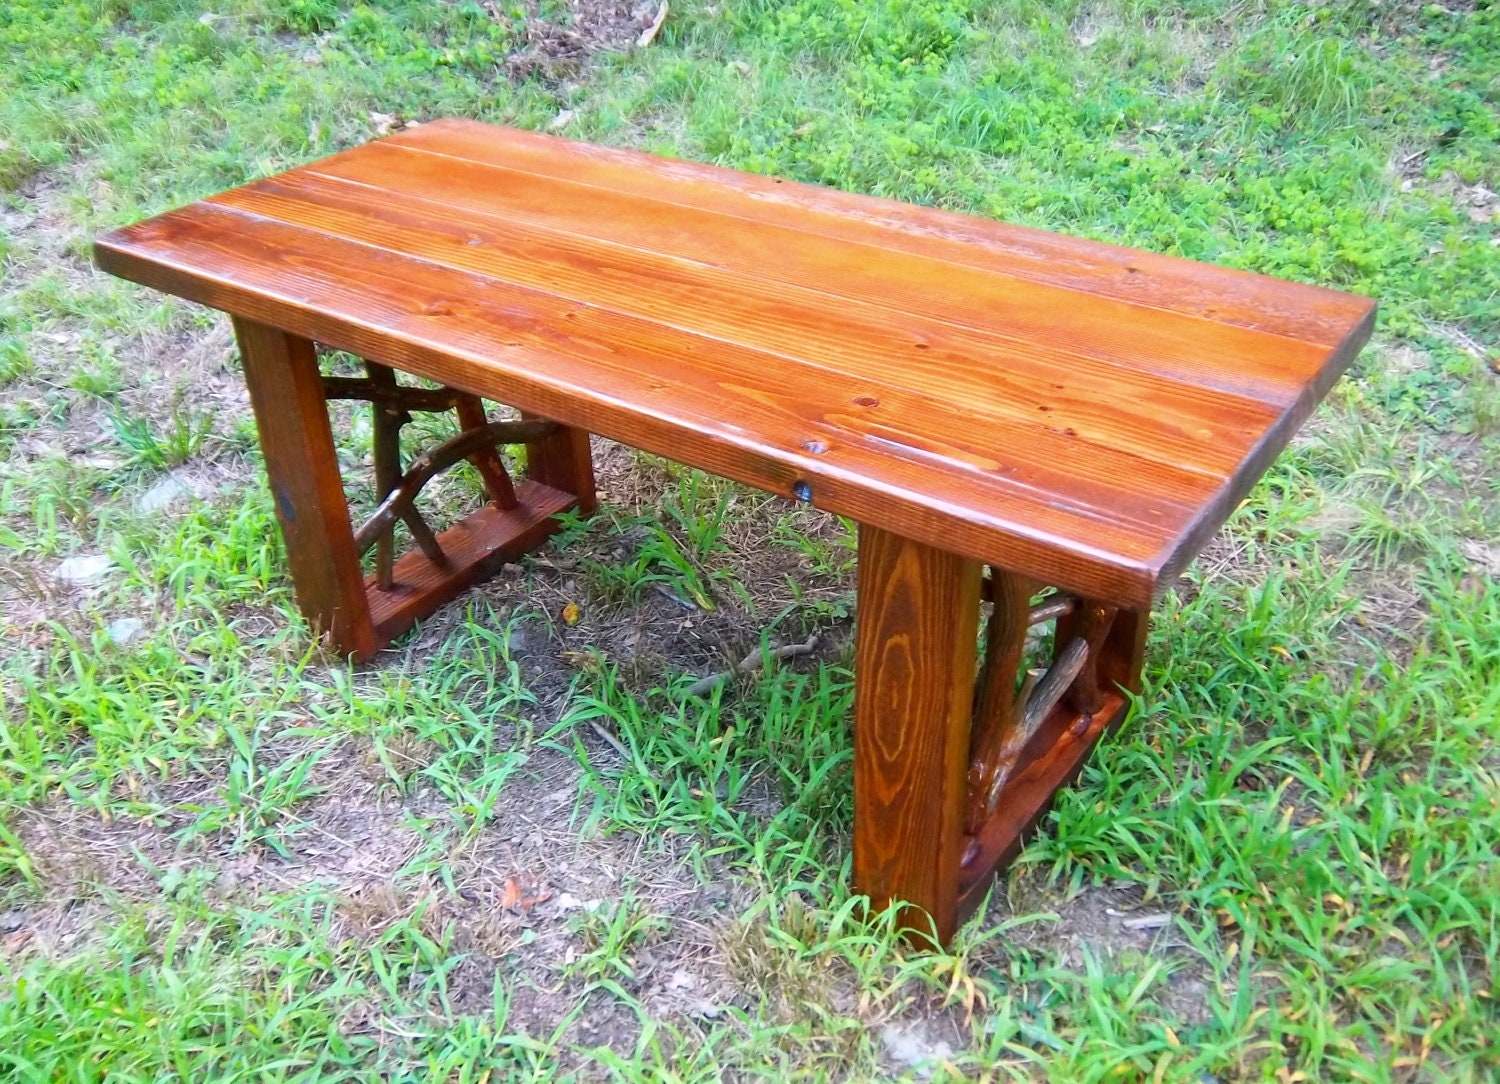 Rustic coffee tables unique and handmade from the log -  Zoom